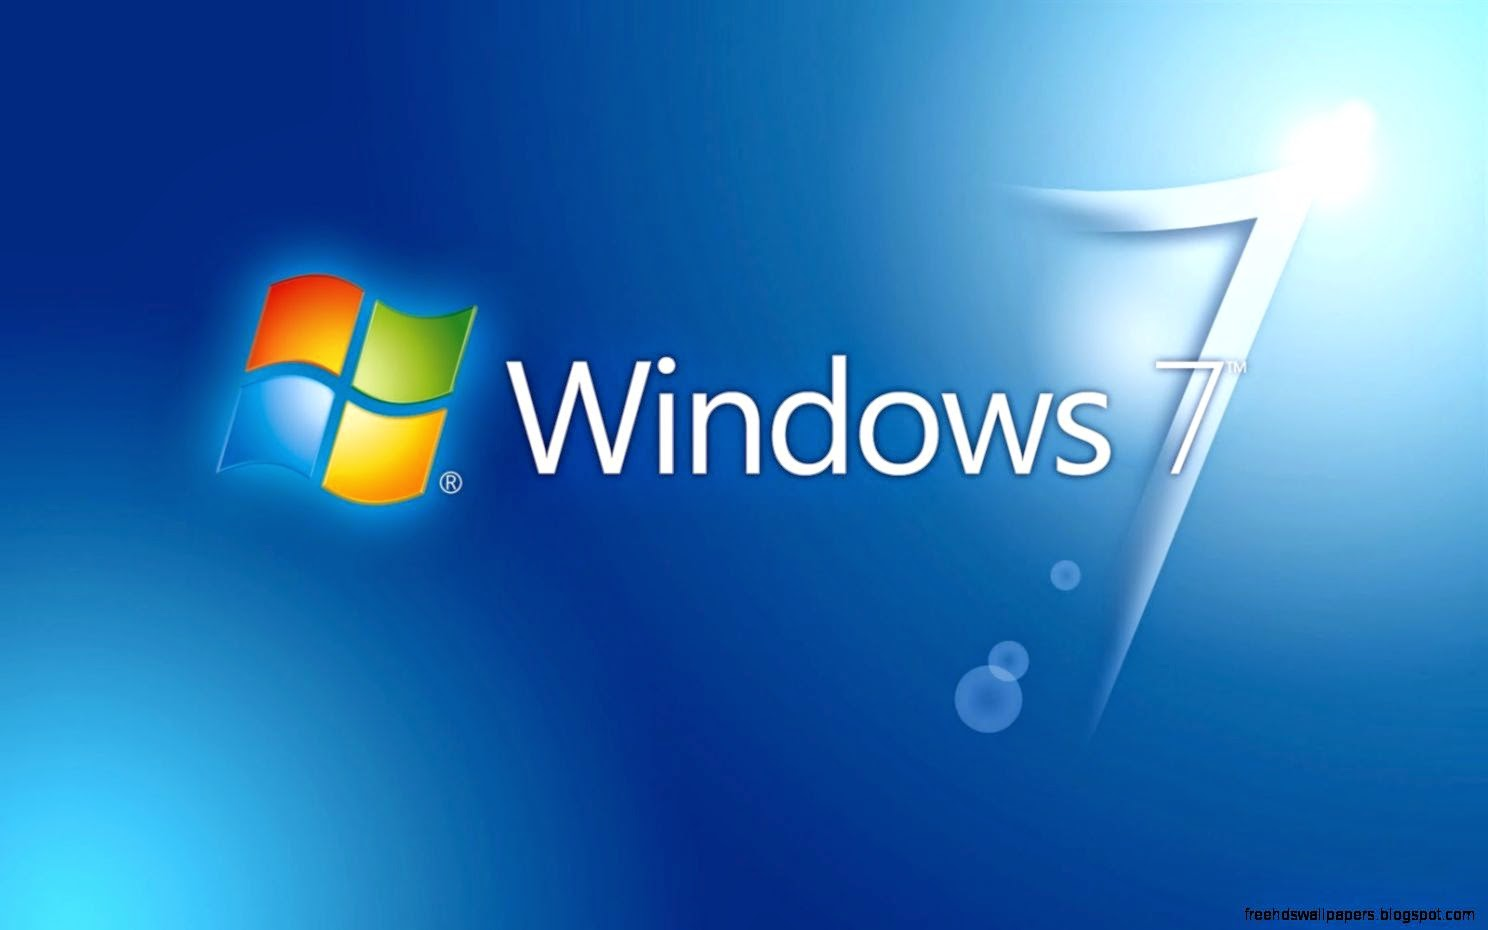 Live Wallpapers For Pc Windows 7 Free Download | Free Hd Wallpapers